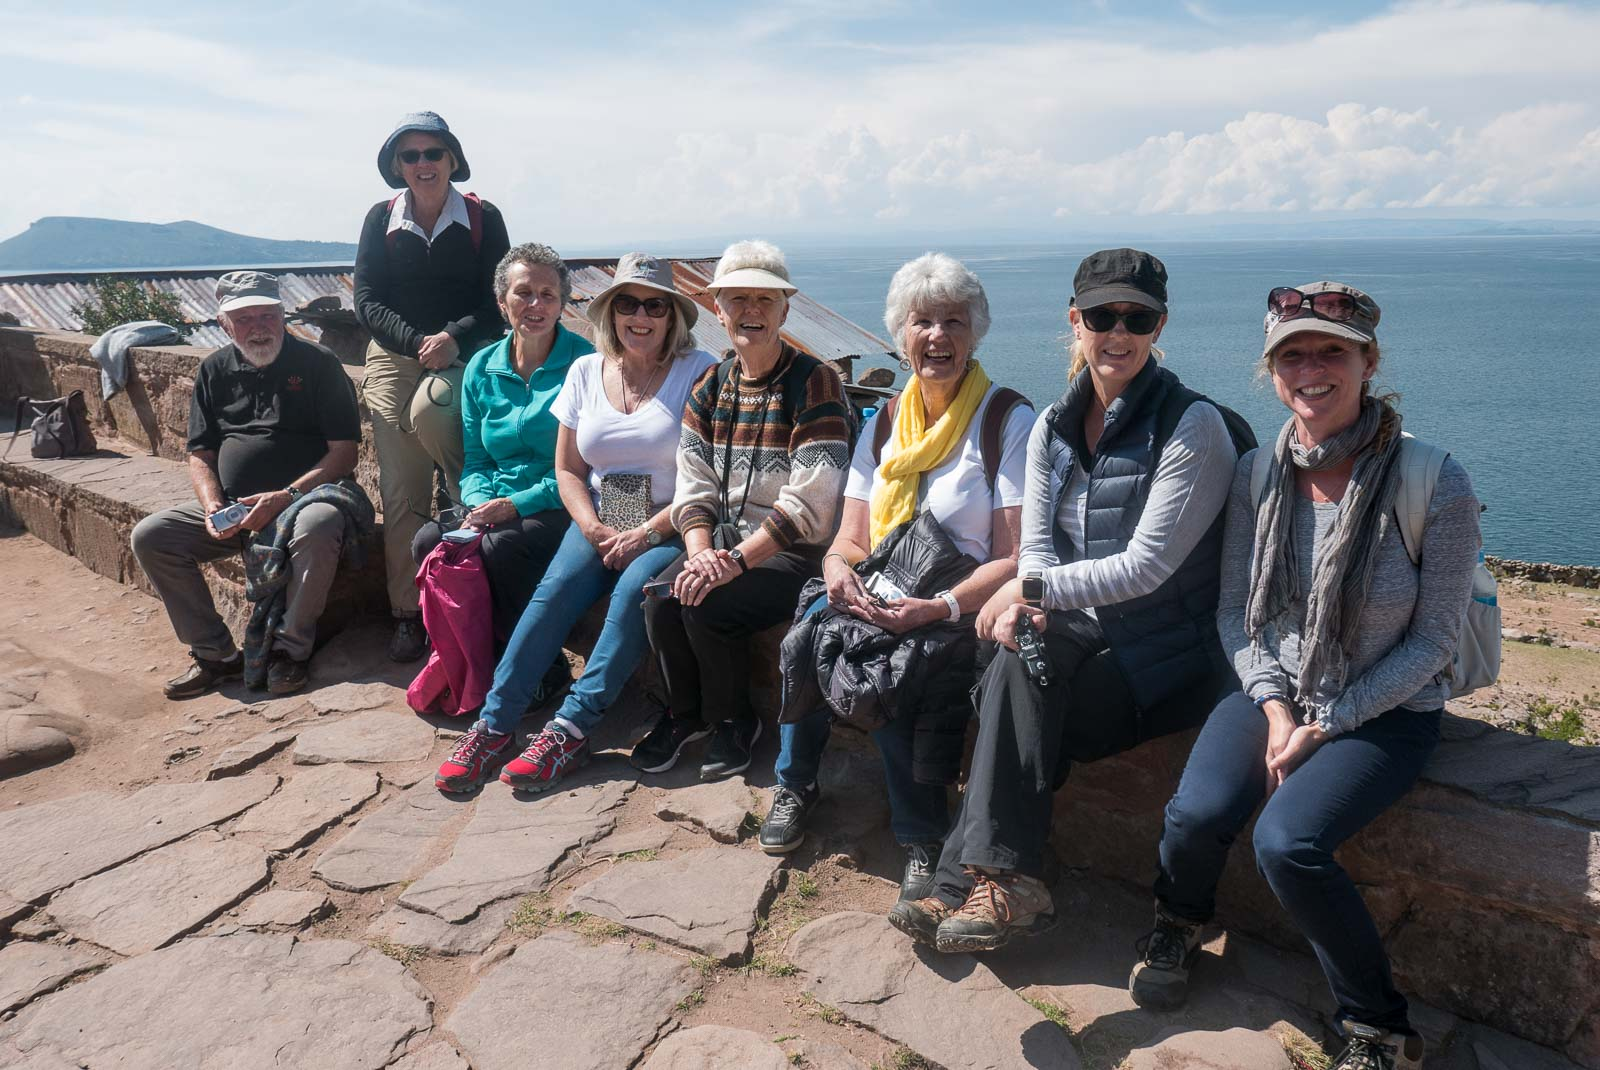 My lovely Two's a Crowd tour group on Taquile Island overlooking Lake Titicaca.